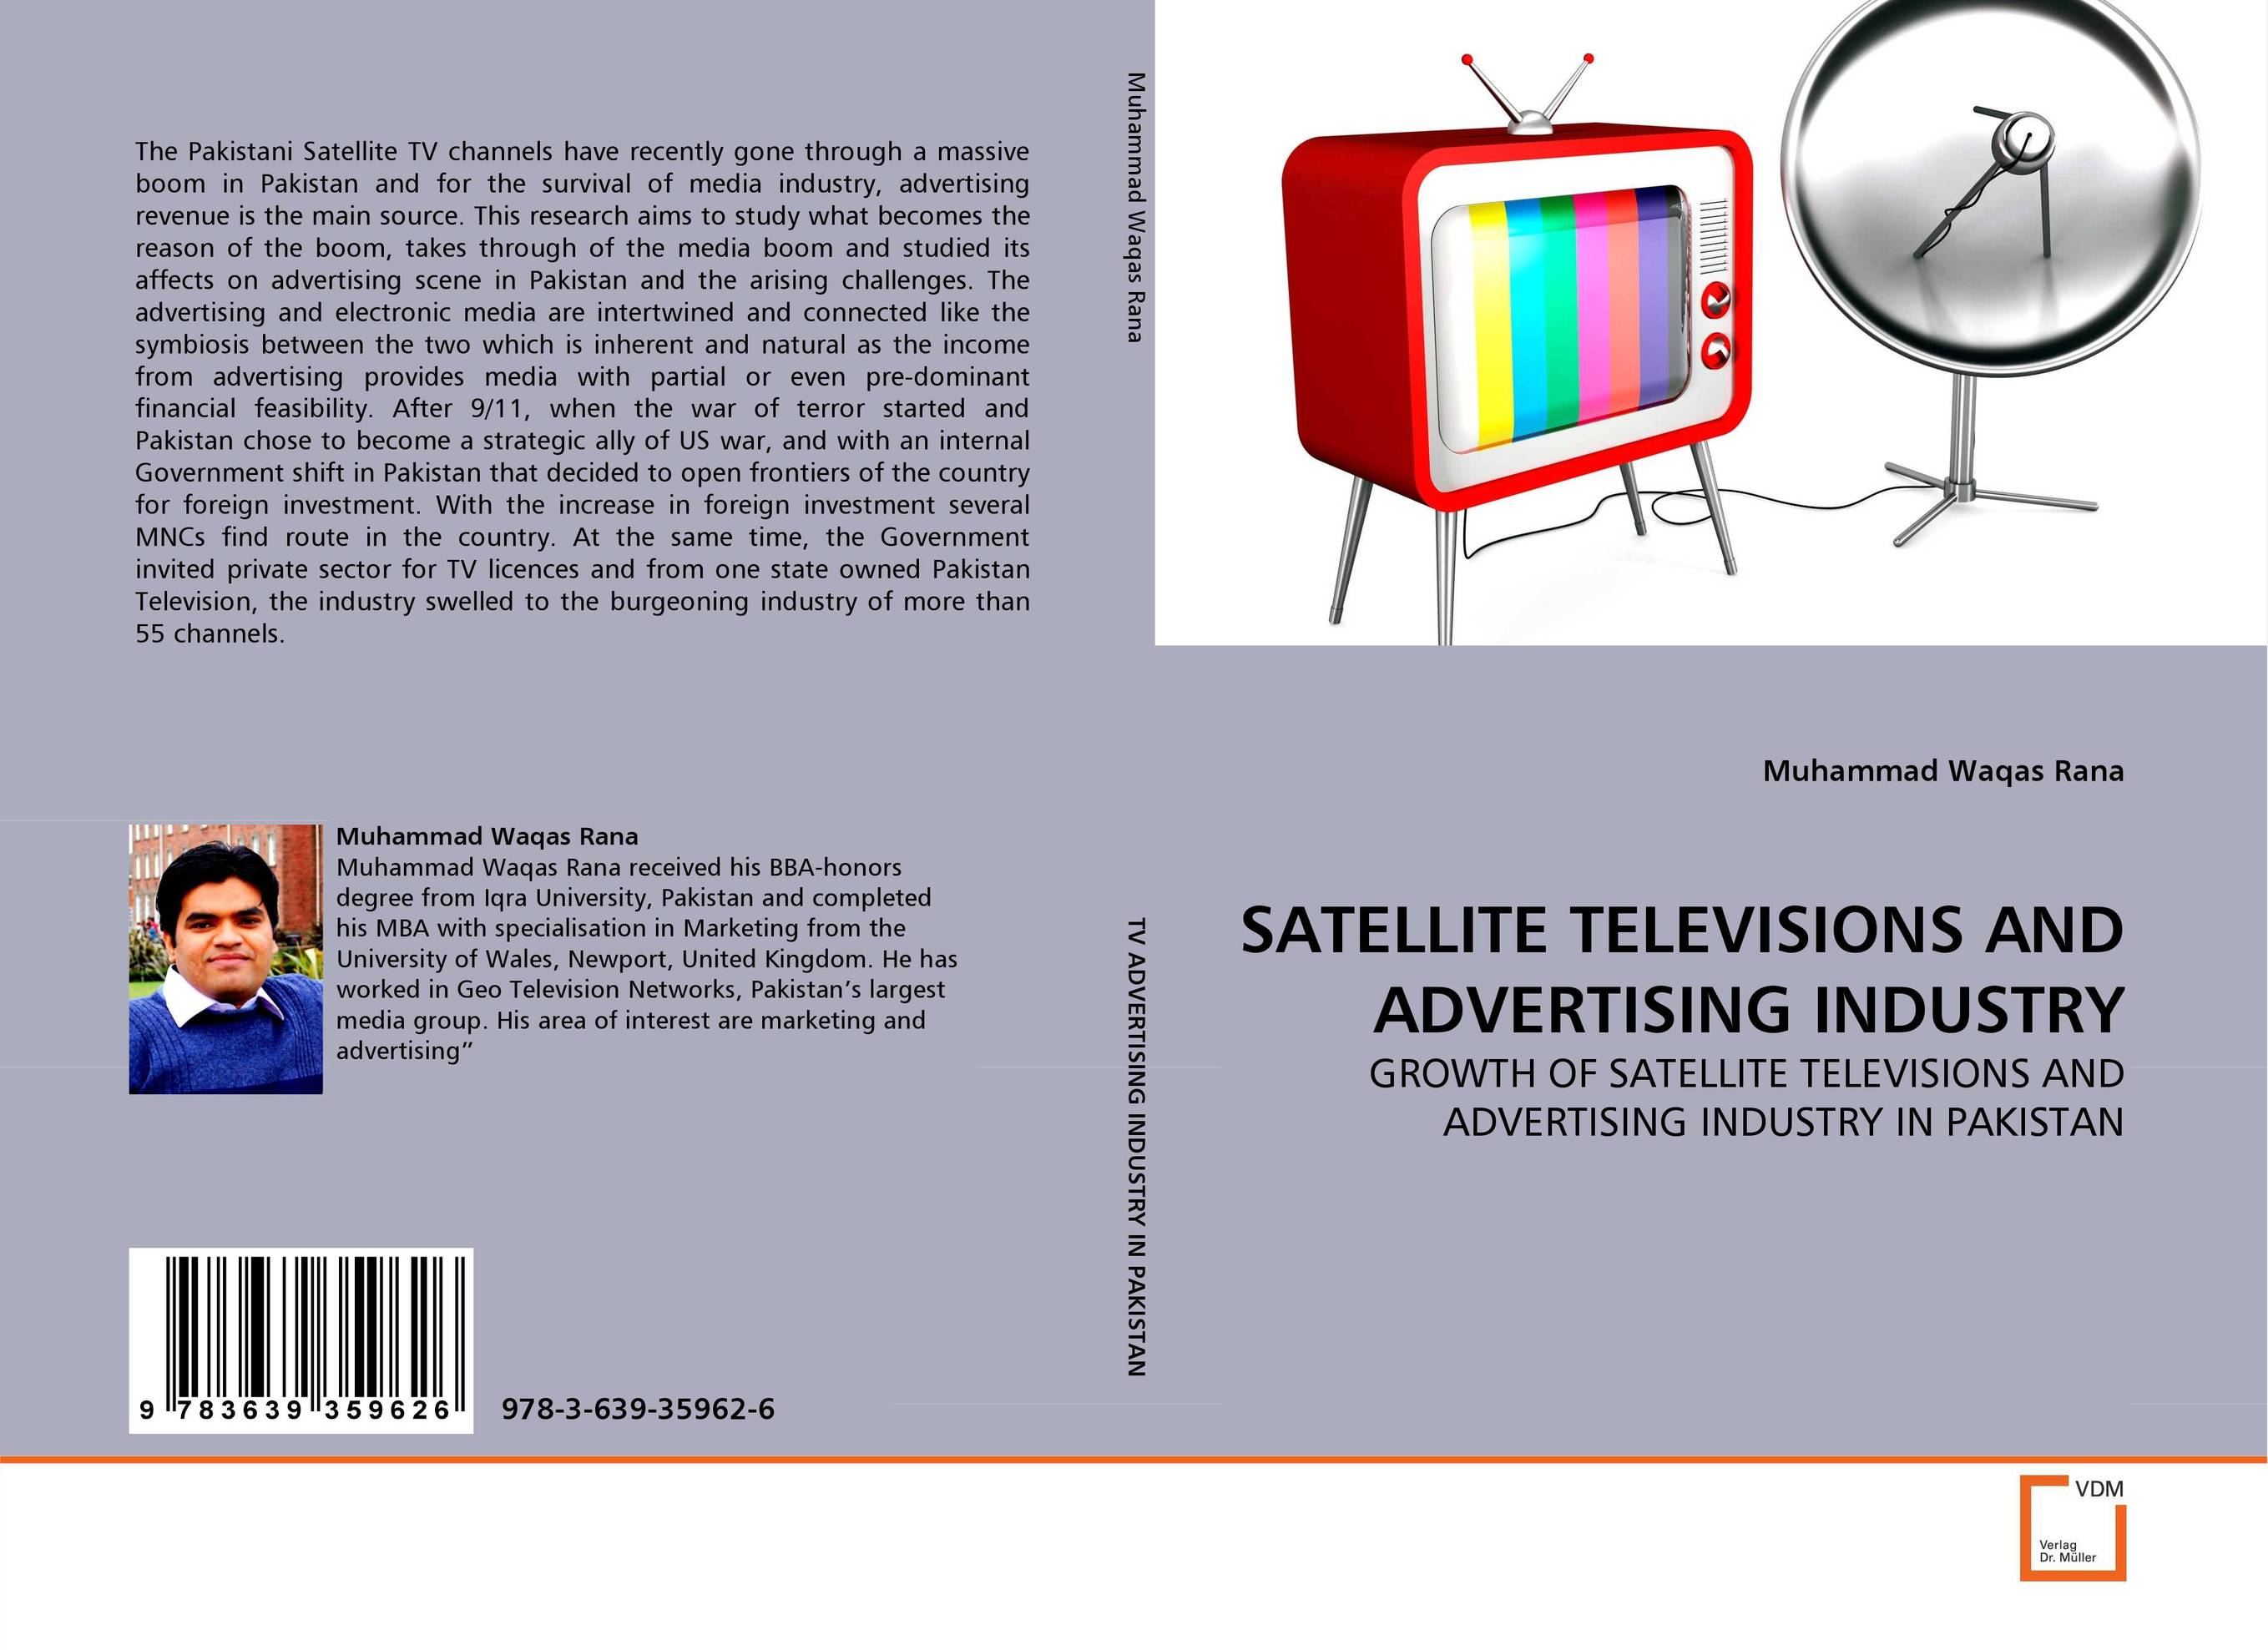 SATELLITE TELEVISIONS AND ADVERTISING INDUSTRY